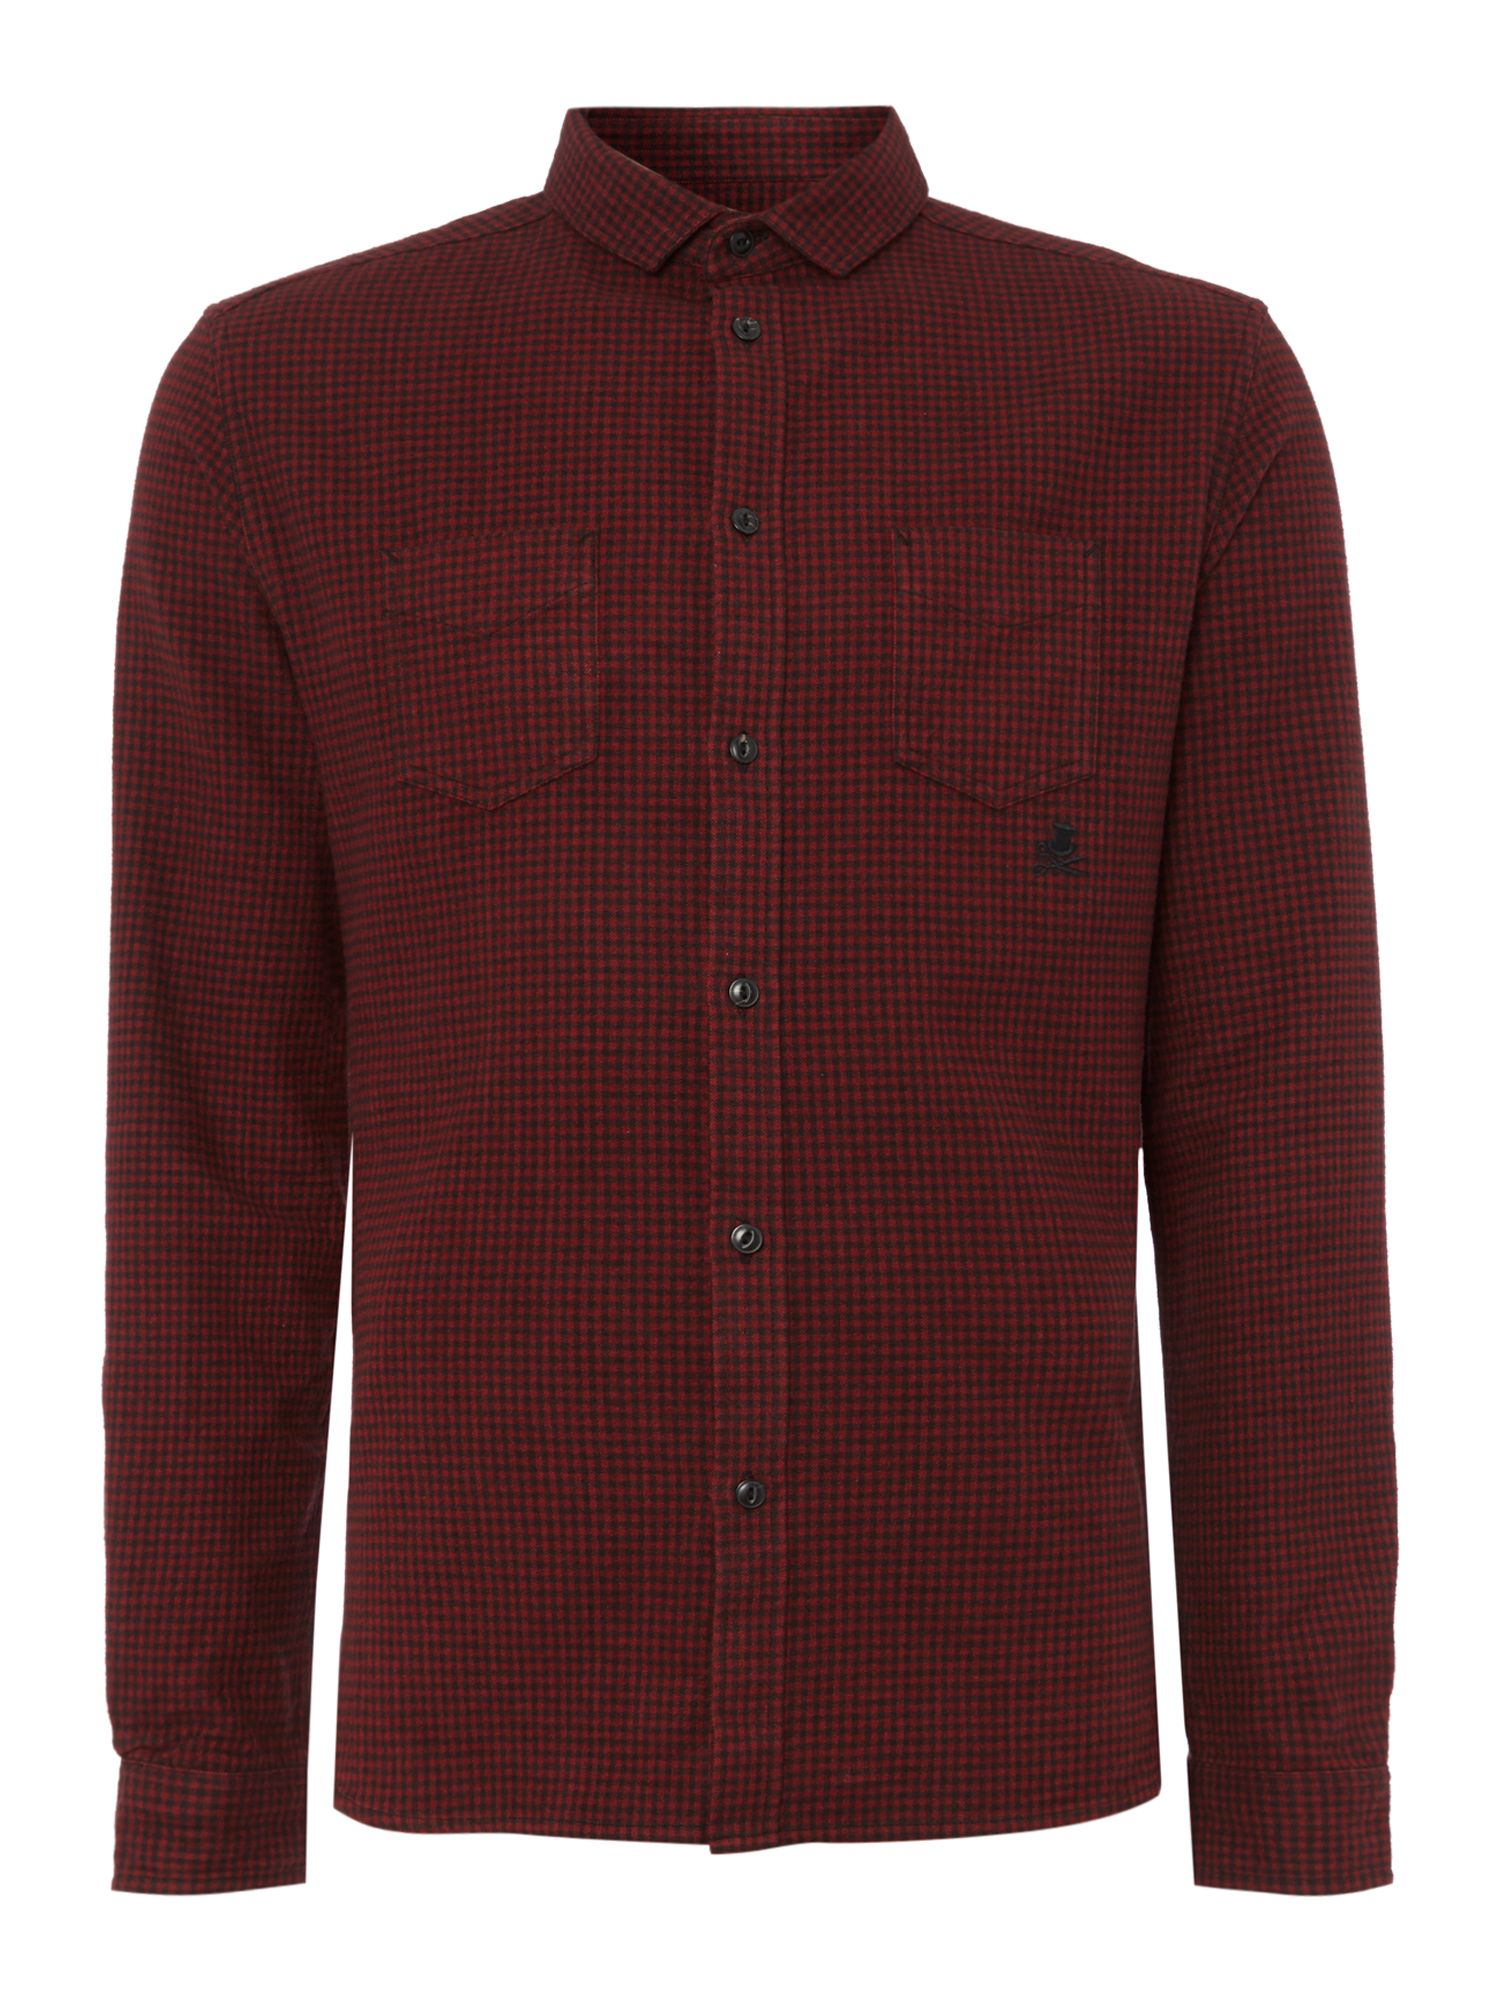 Marx mini check shirt